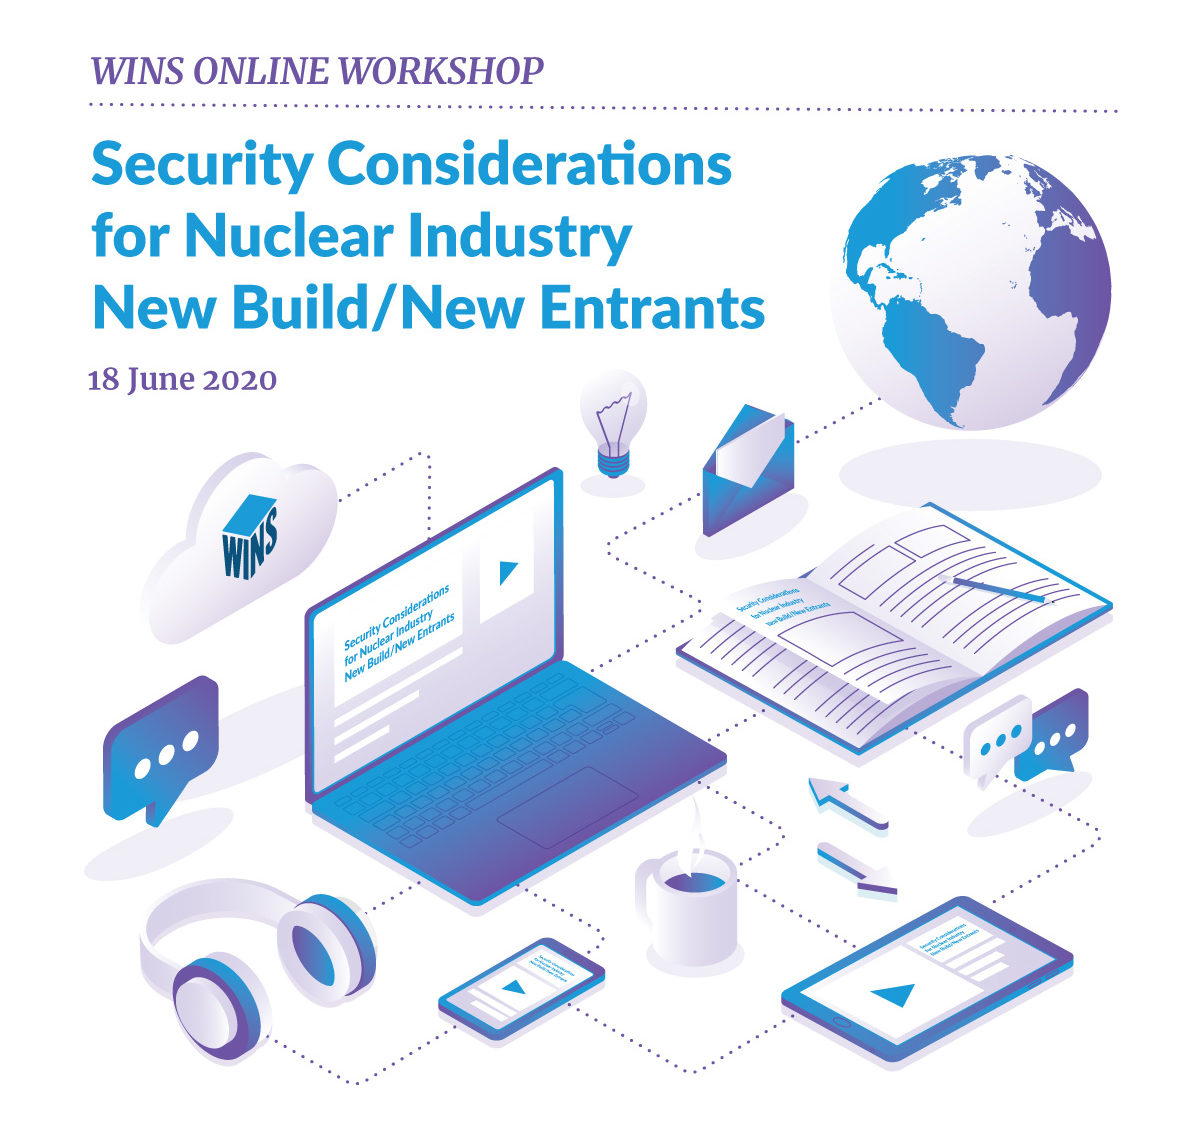 Online Workshop on Security Considerations for Nuclear Industry New Build/New Entrants